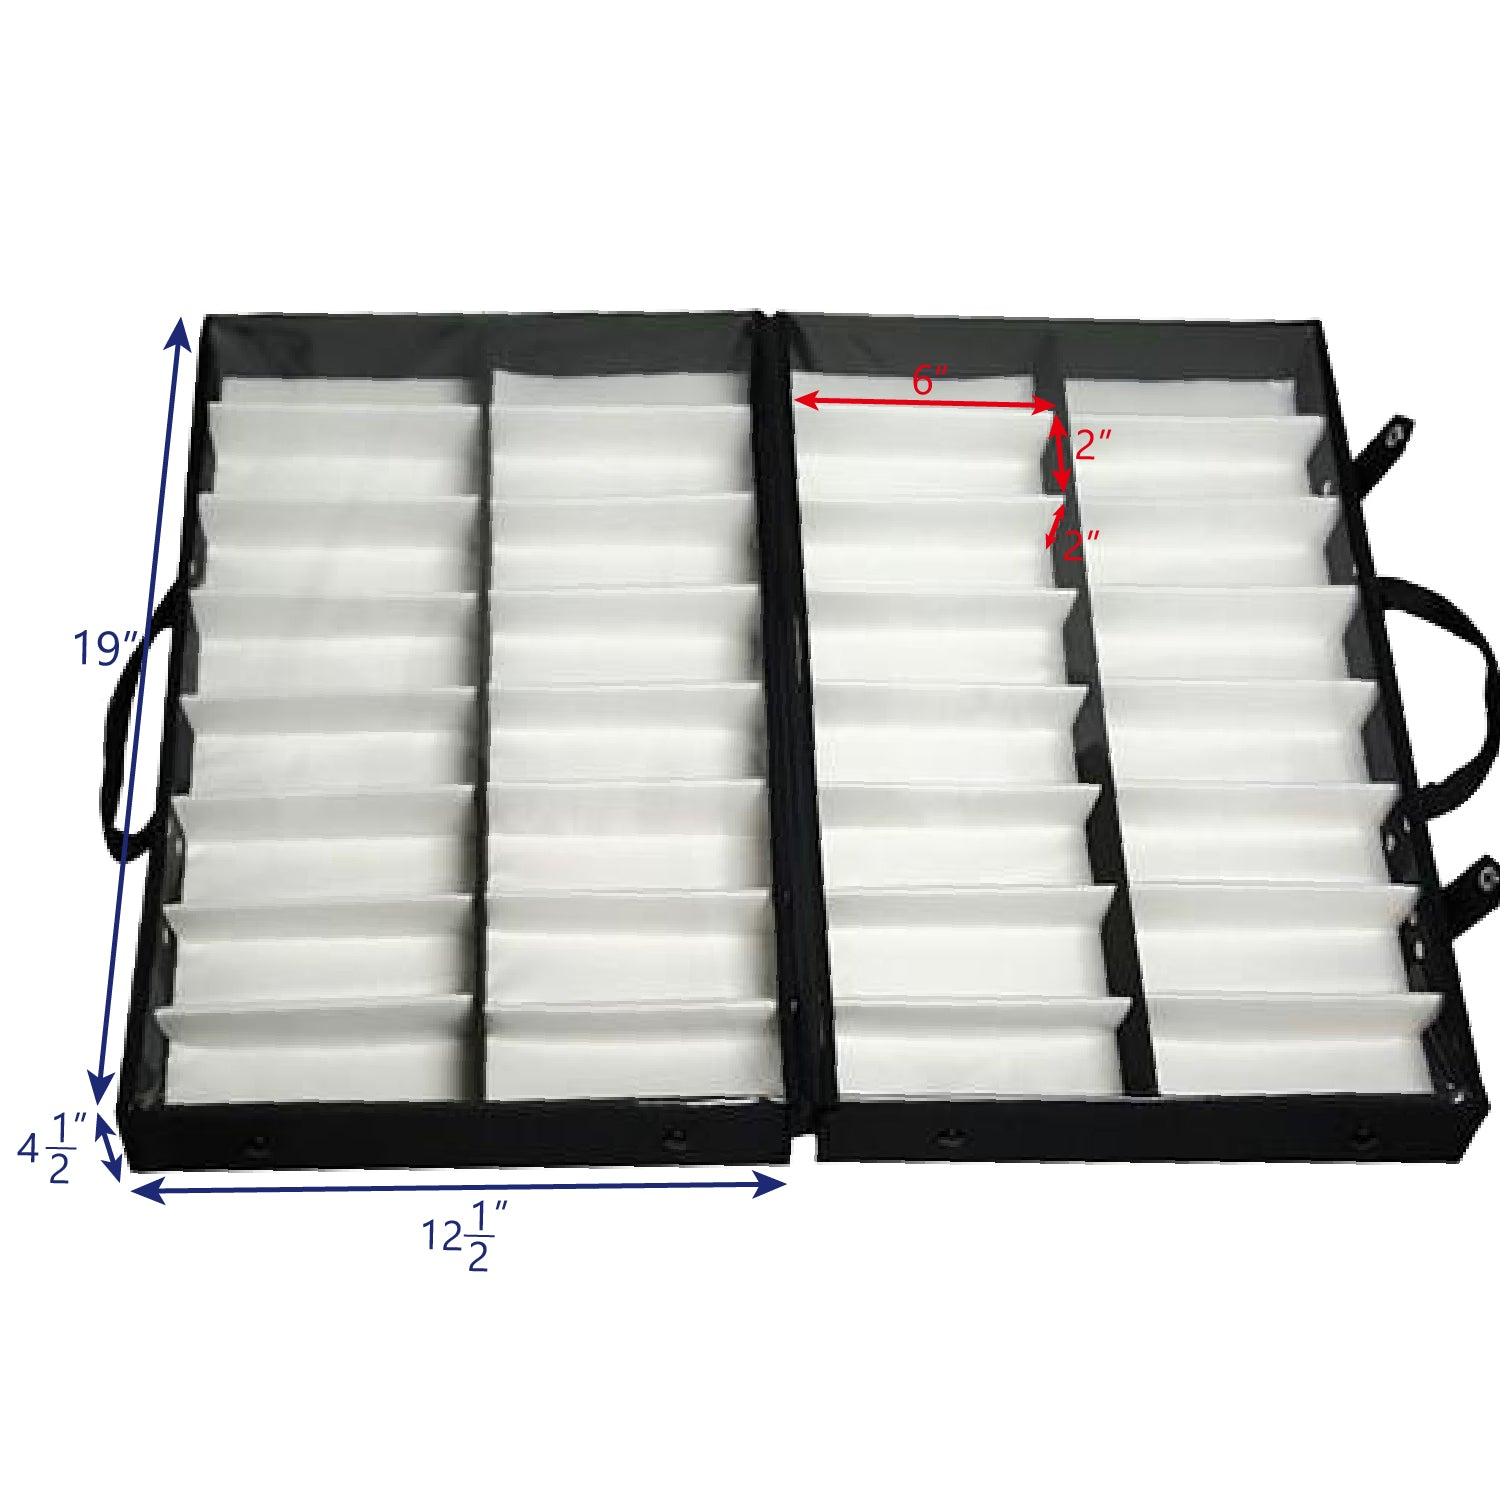 #TR-1616BC Eyewear Carrying Cases W/Clear Lid  For 32 Frames